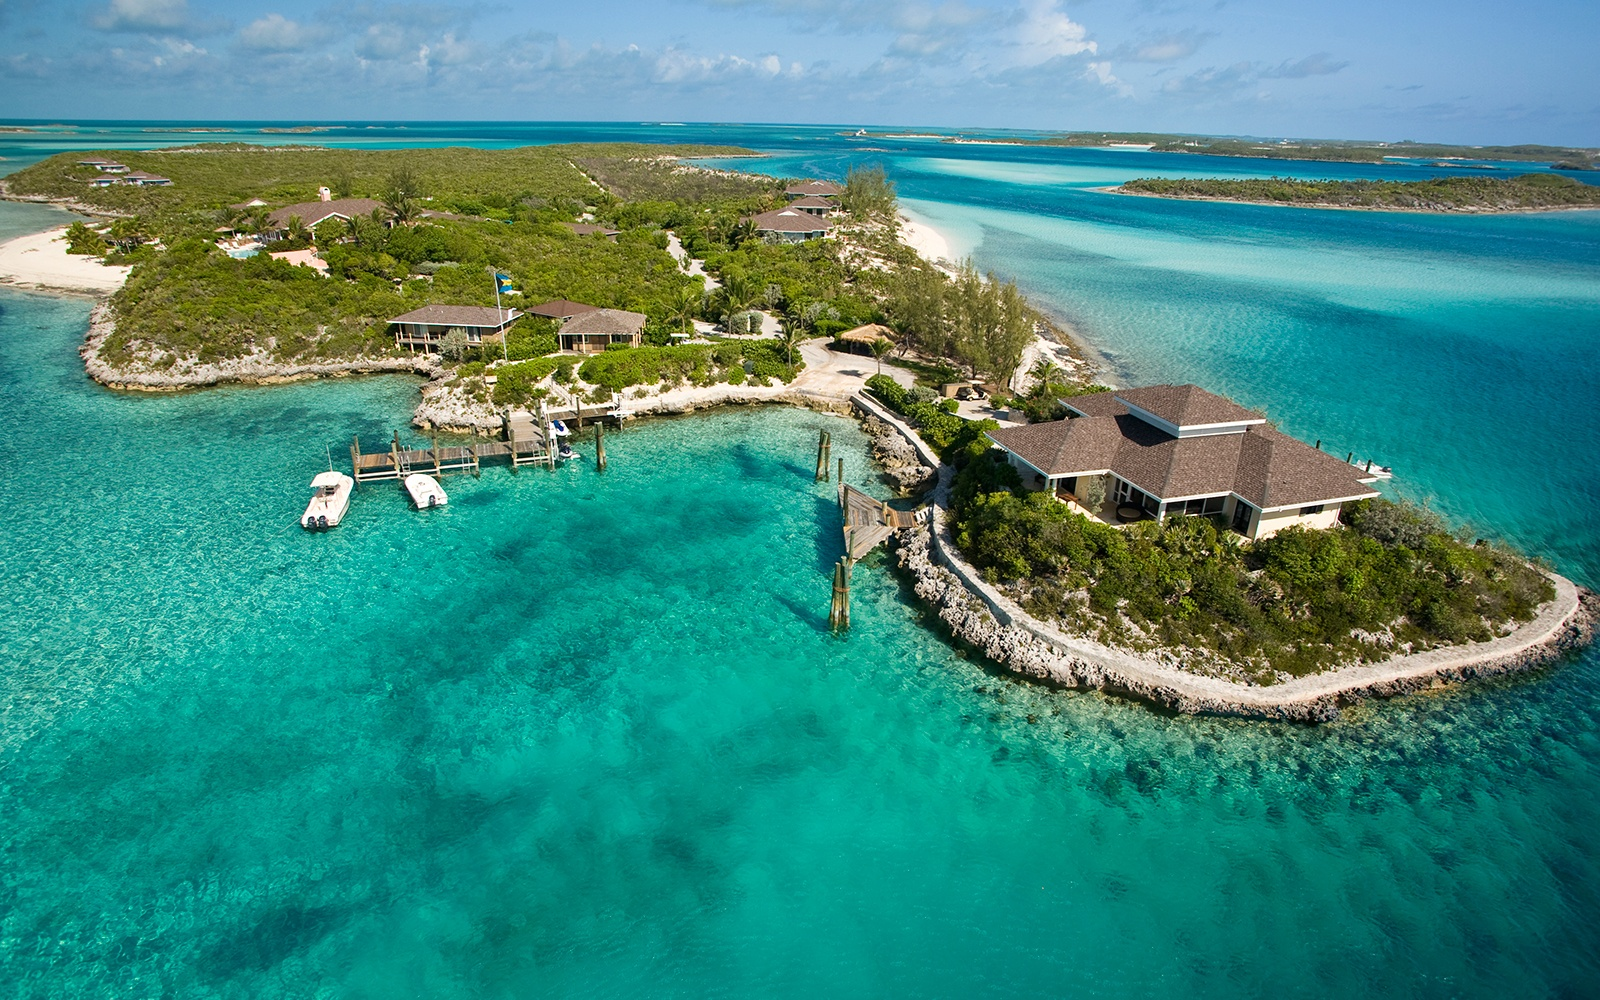 If you're the kind of traveler who considers privacy the ultimate luxury, this 50-acre private island resort comes close to Utopia. Housing just six whitewashed villas set at a blissfully far remove from one another, this under-the-radar Bahamian retreat